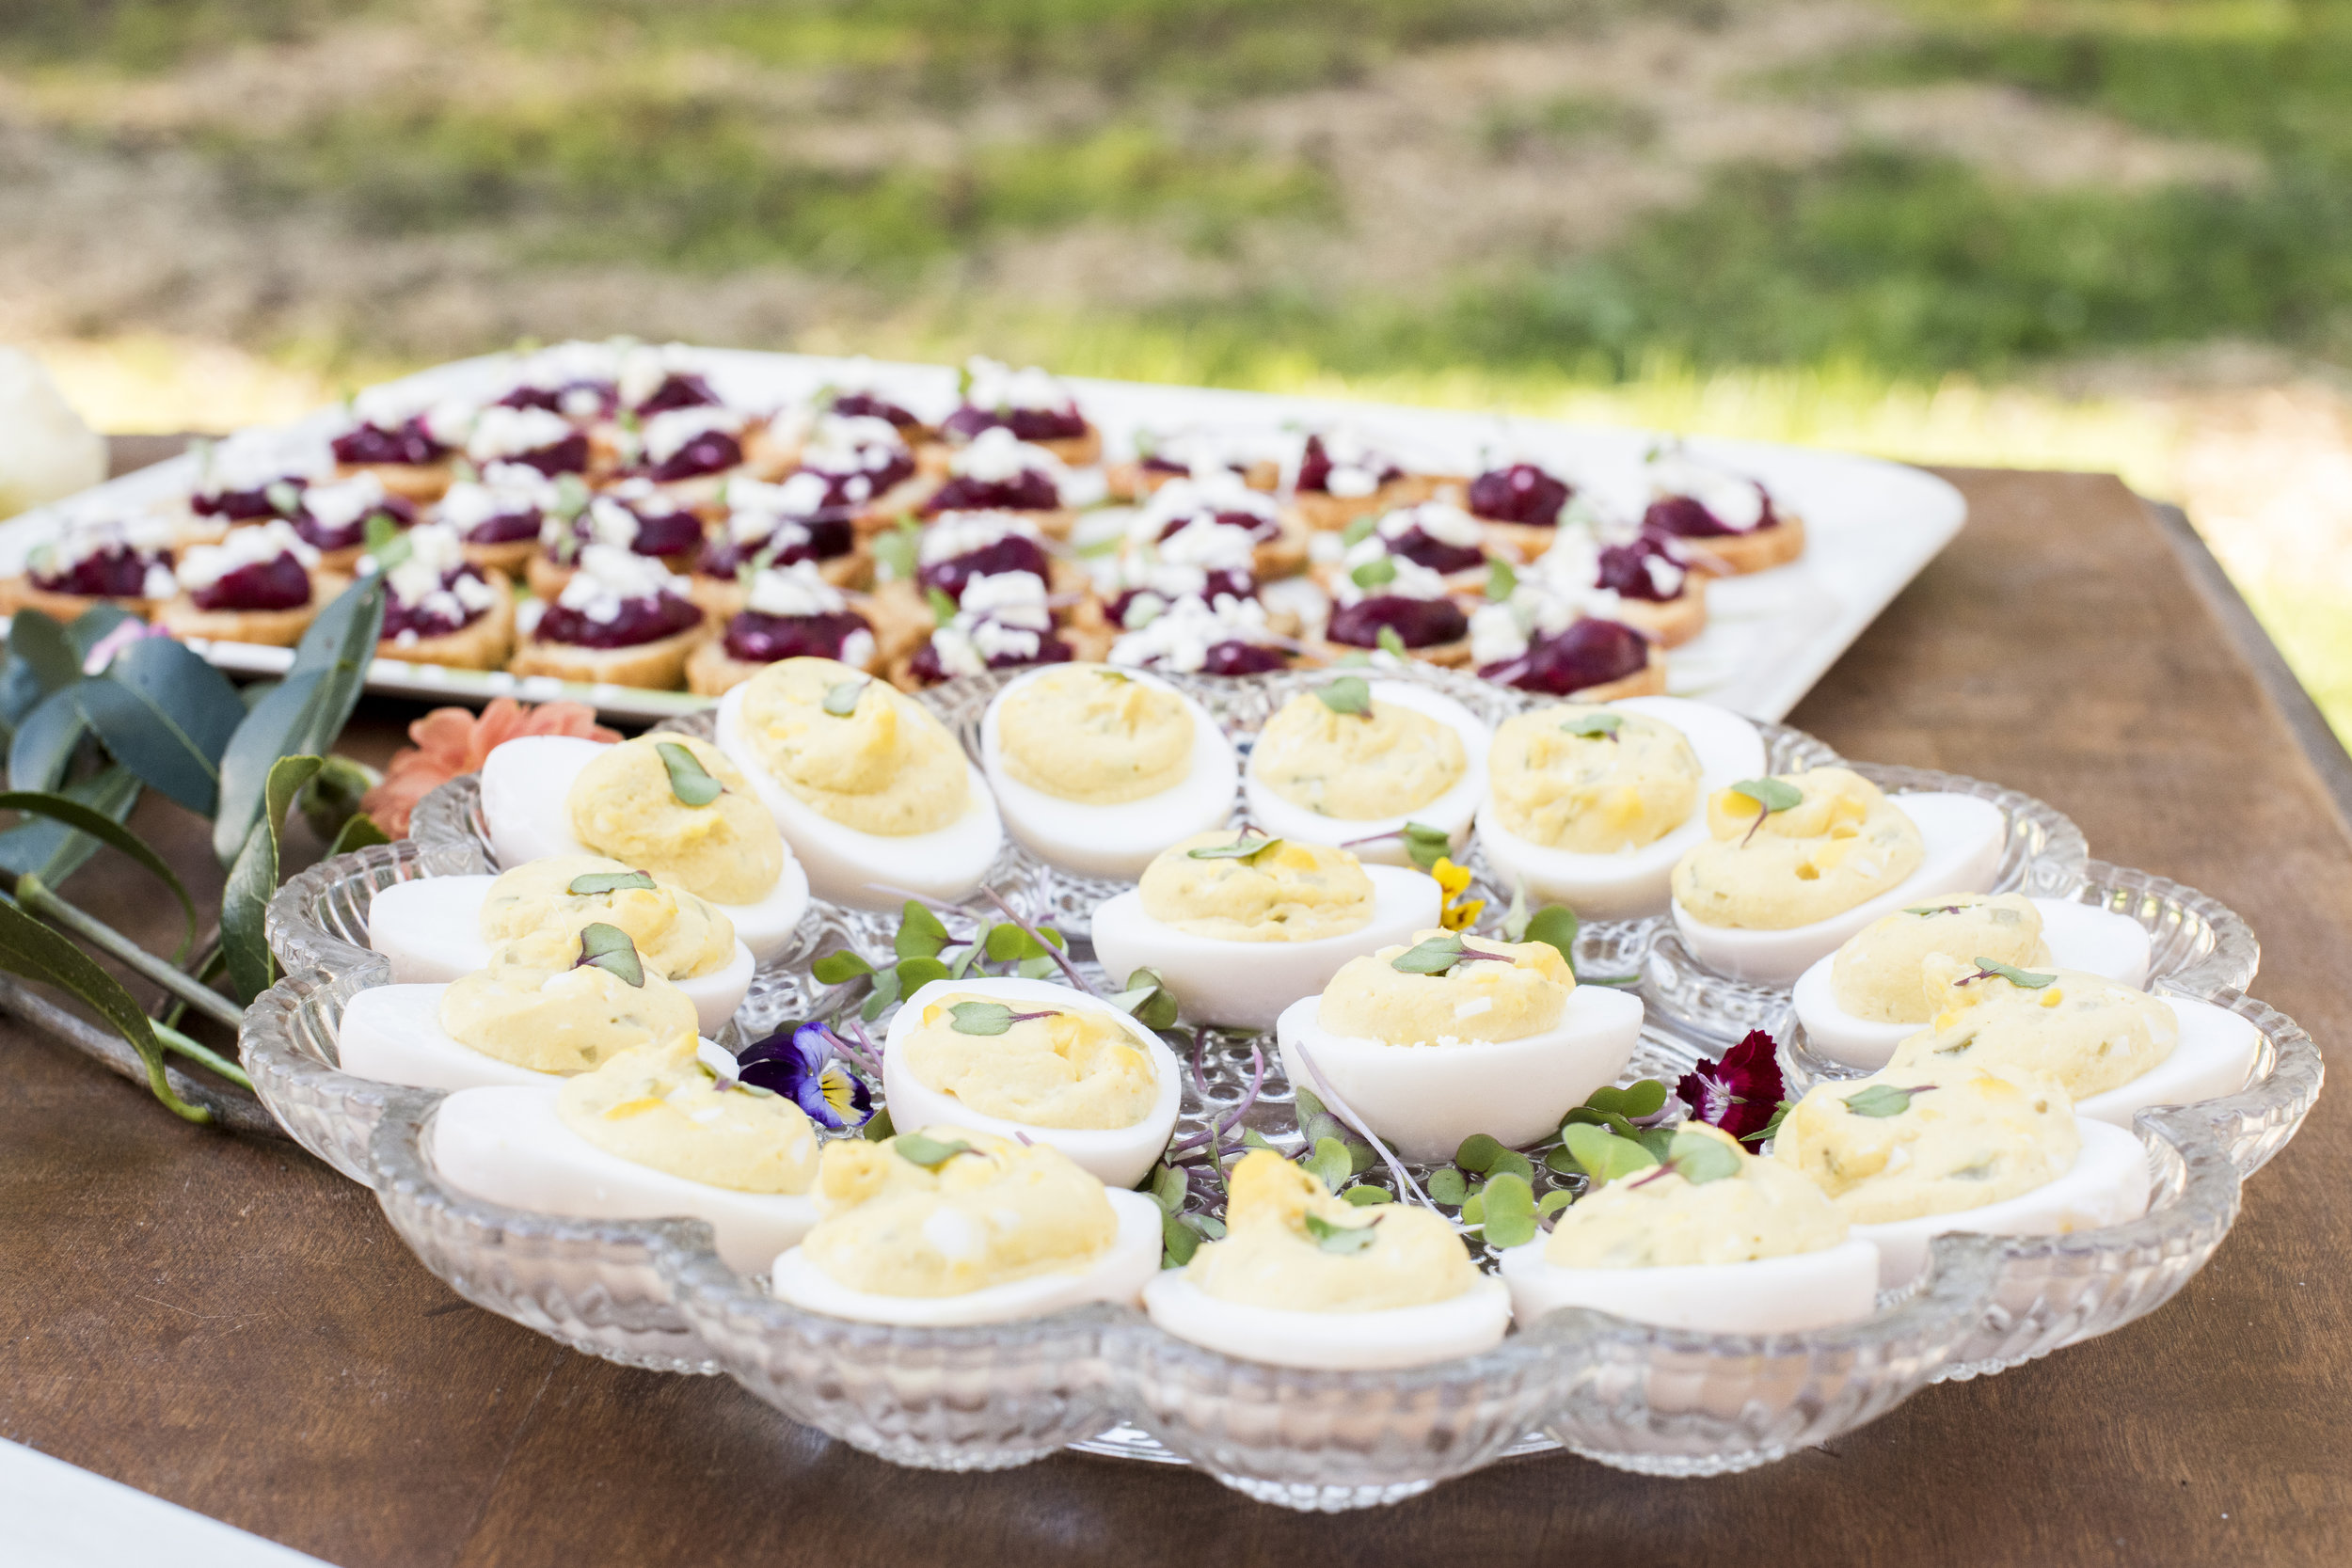 Pickled Deviled Eggs; Photo by: Jessica Merithew Photography